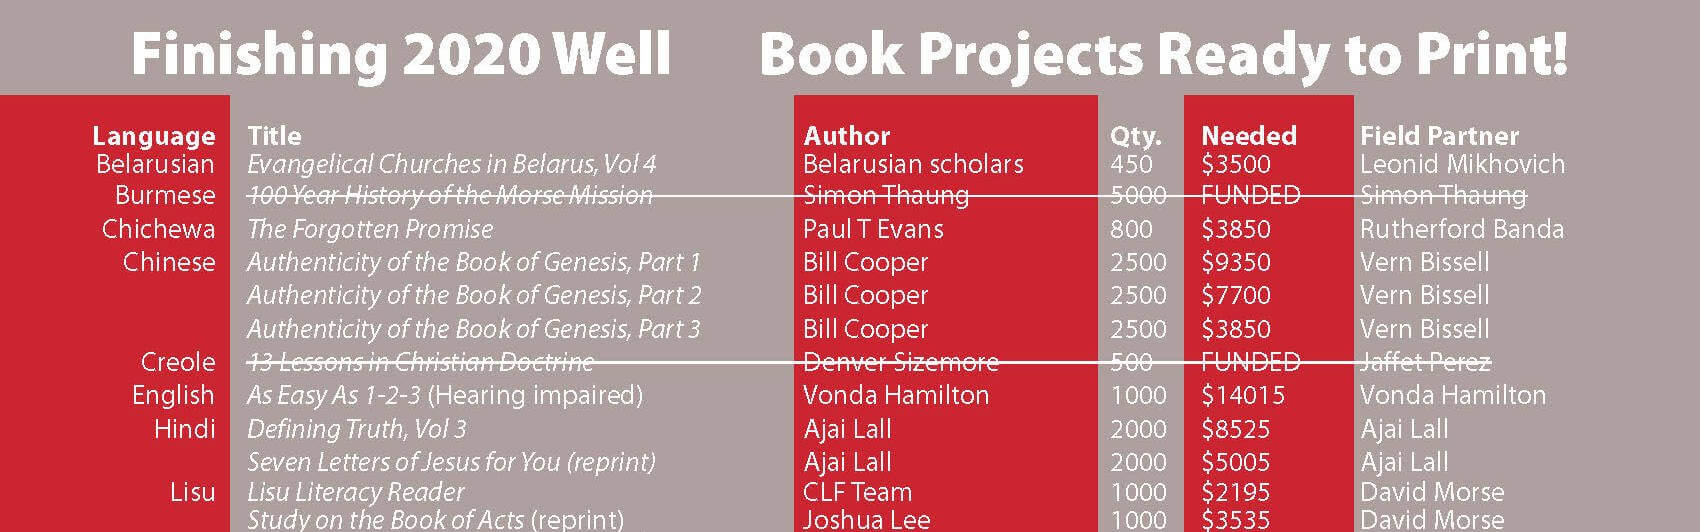 Finish 2020 Well Project List Top